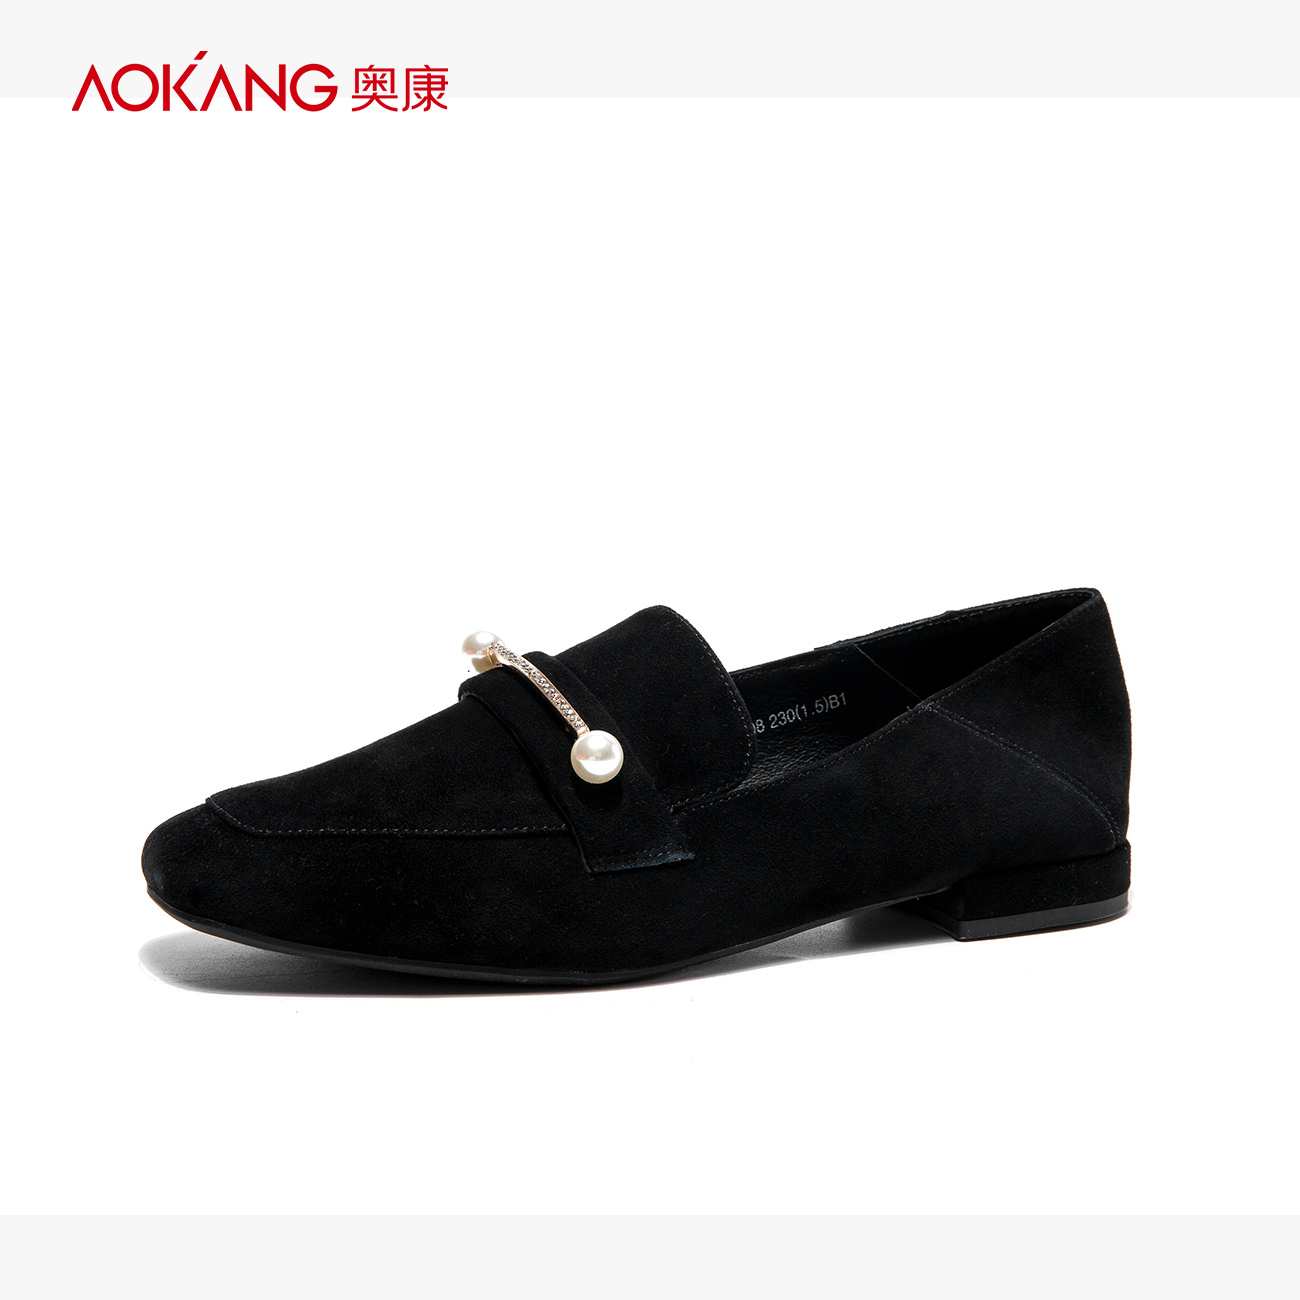 [The goods stop production and no stock]Aokang women's shoes square-headed leisure comfortable women's single shoes sheep's diamond ornament fashion women's shoes in autumn